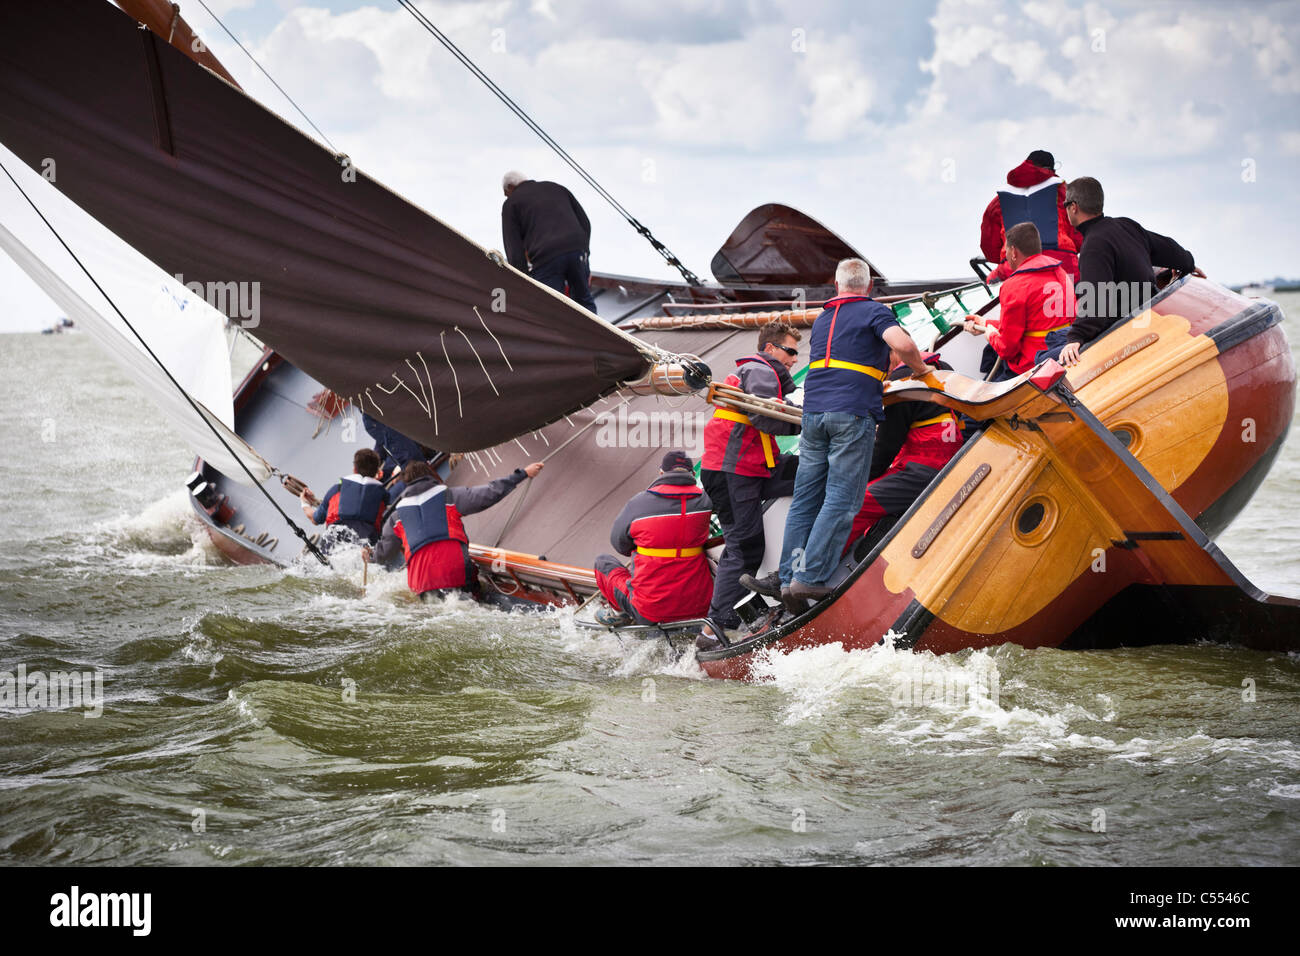 The Netherlands, Lemmer, Sailing races called Skutsjesilen, with traditional flat-bottomed cargo boats called Skutsjes. - Stock Image